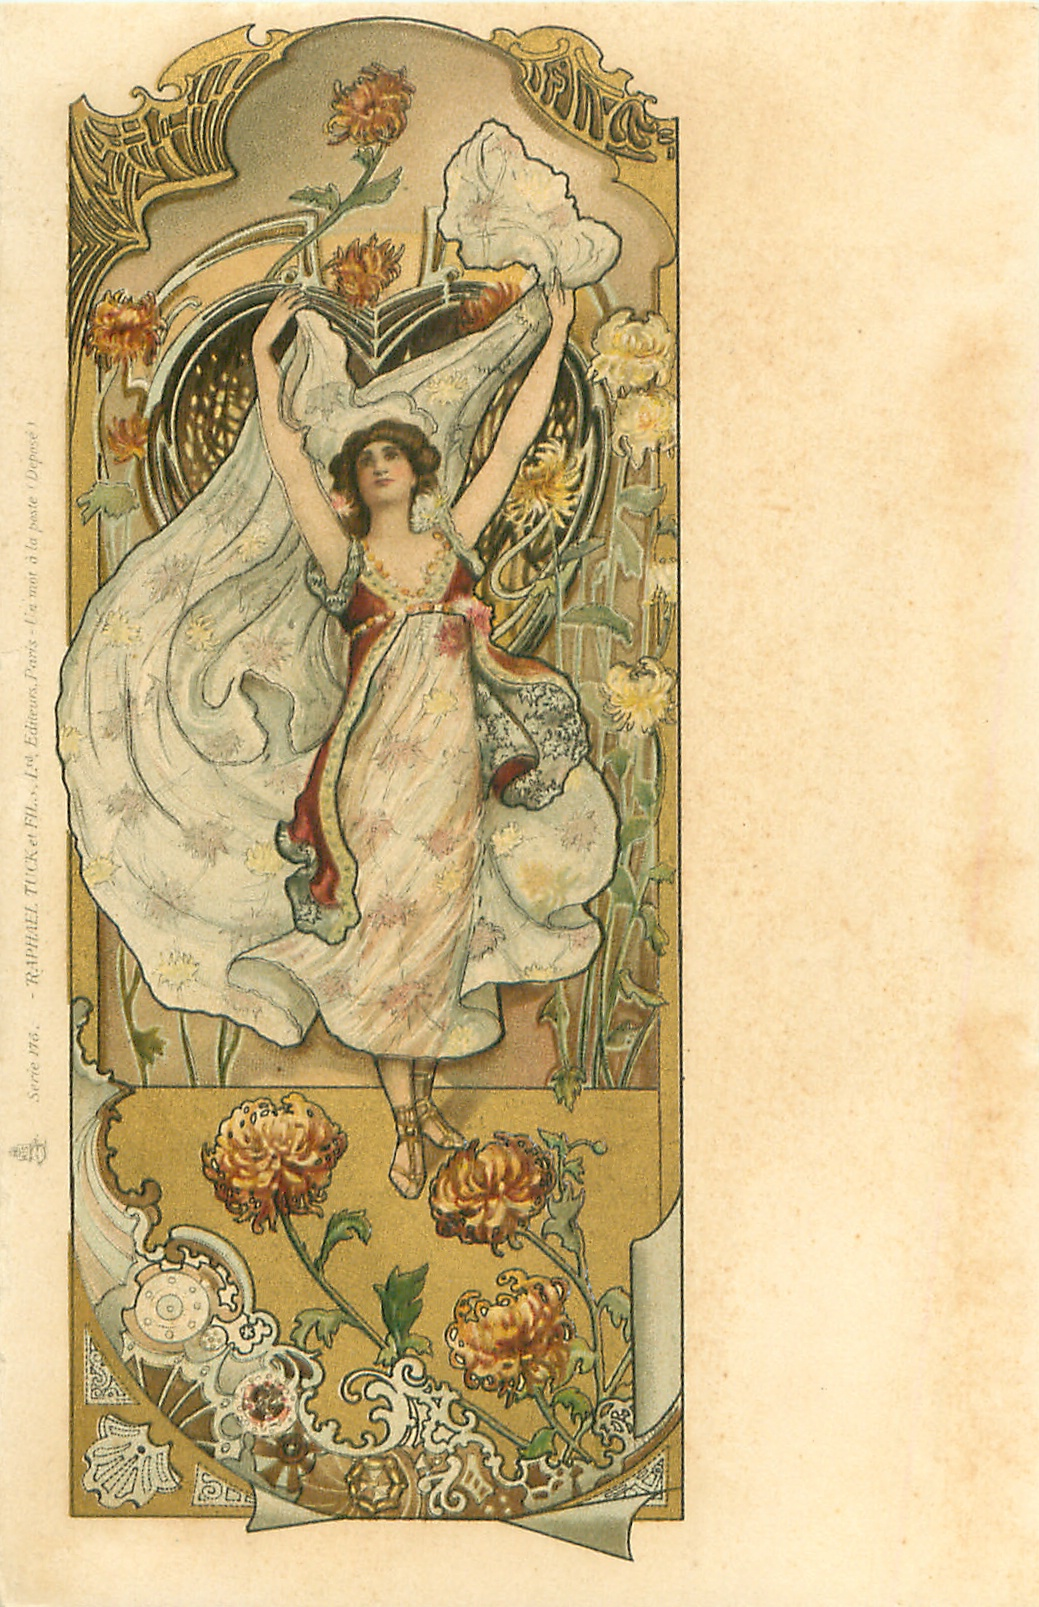 Woman Wearing White Dress With Stars Both Arms Above Her